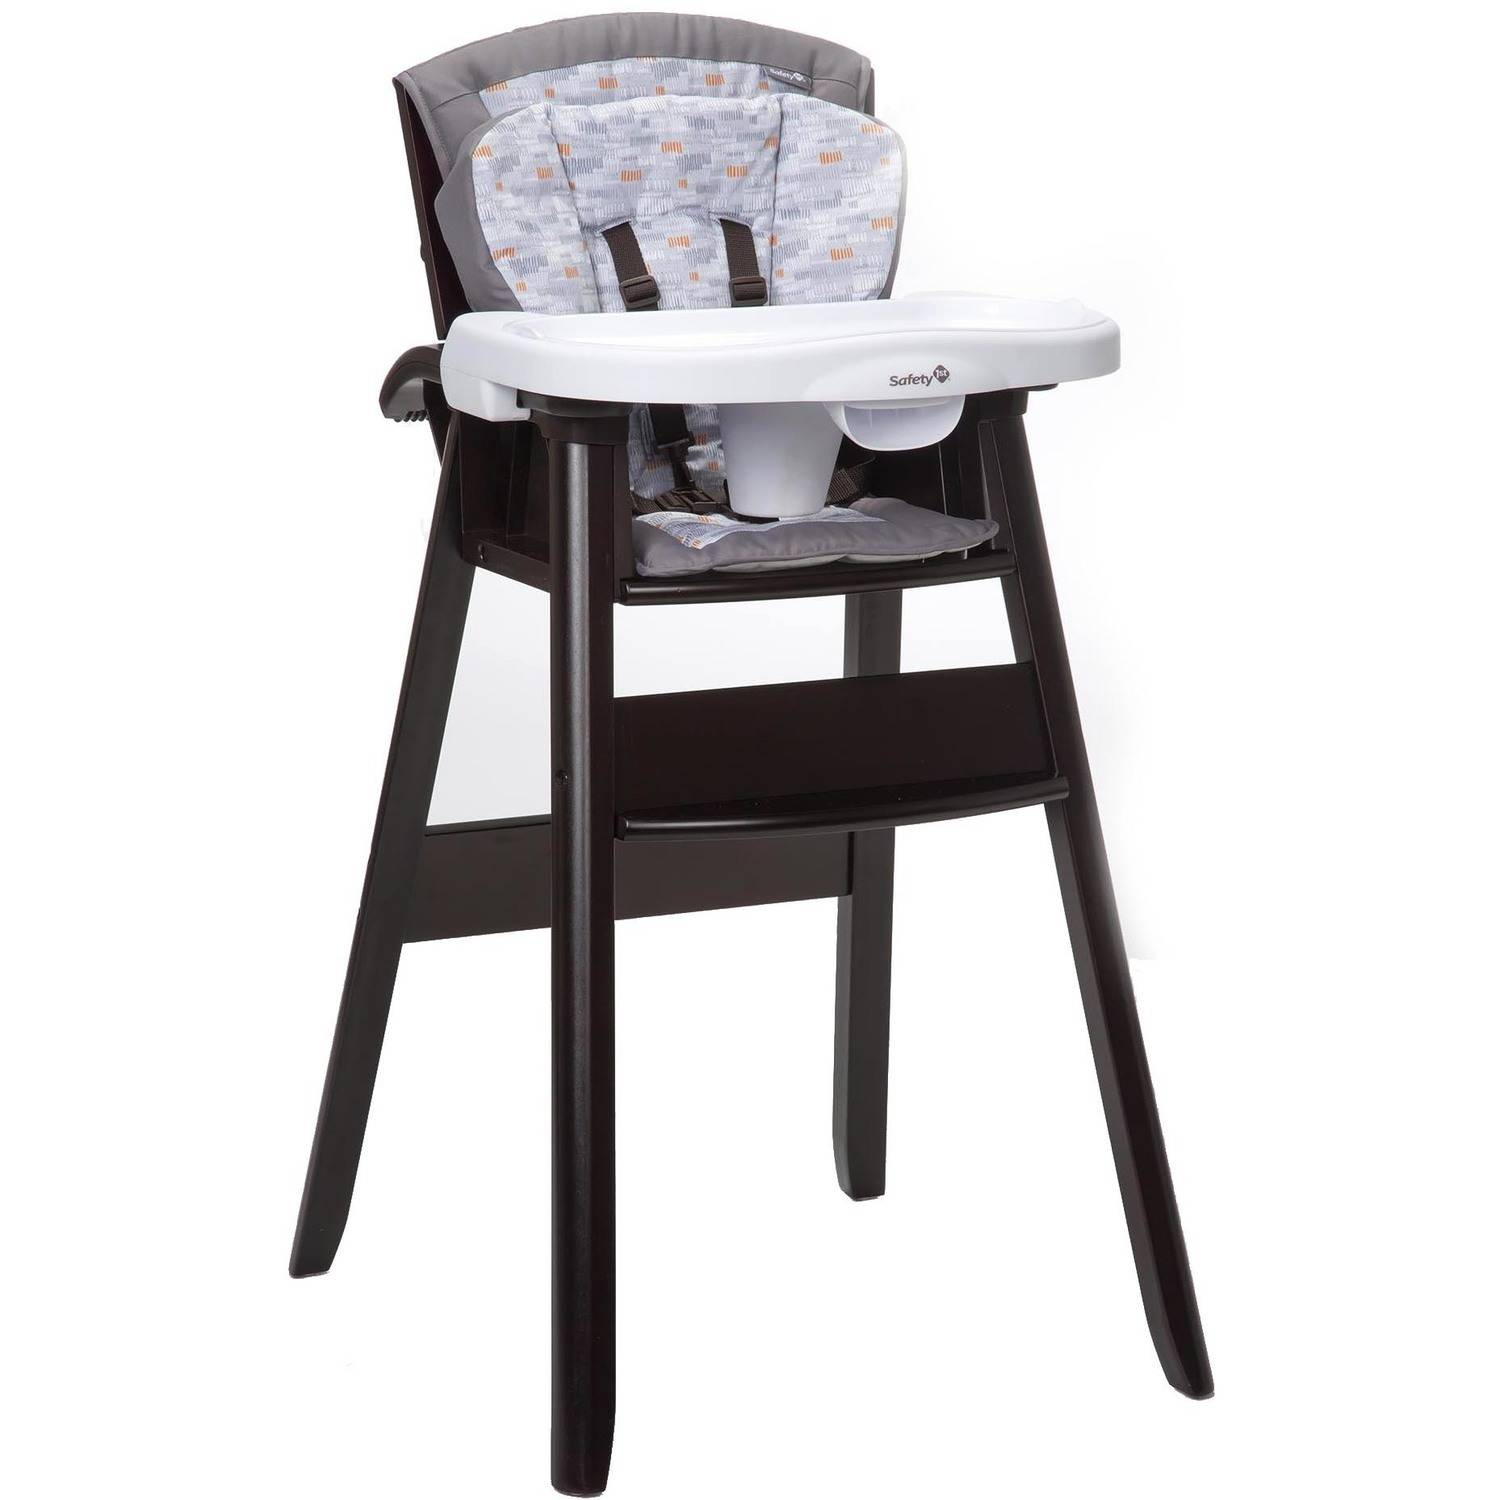 Safety 1st Dine and Recline Wood High Chair, Titanium